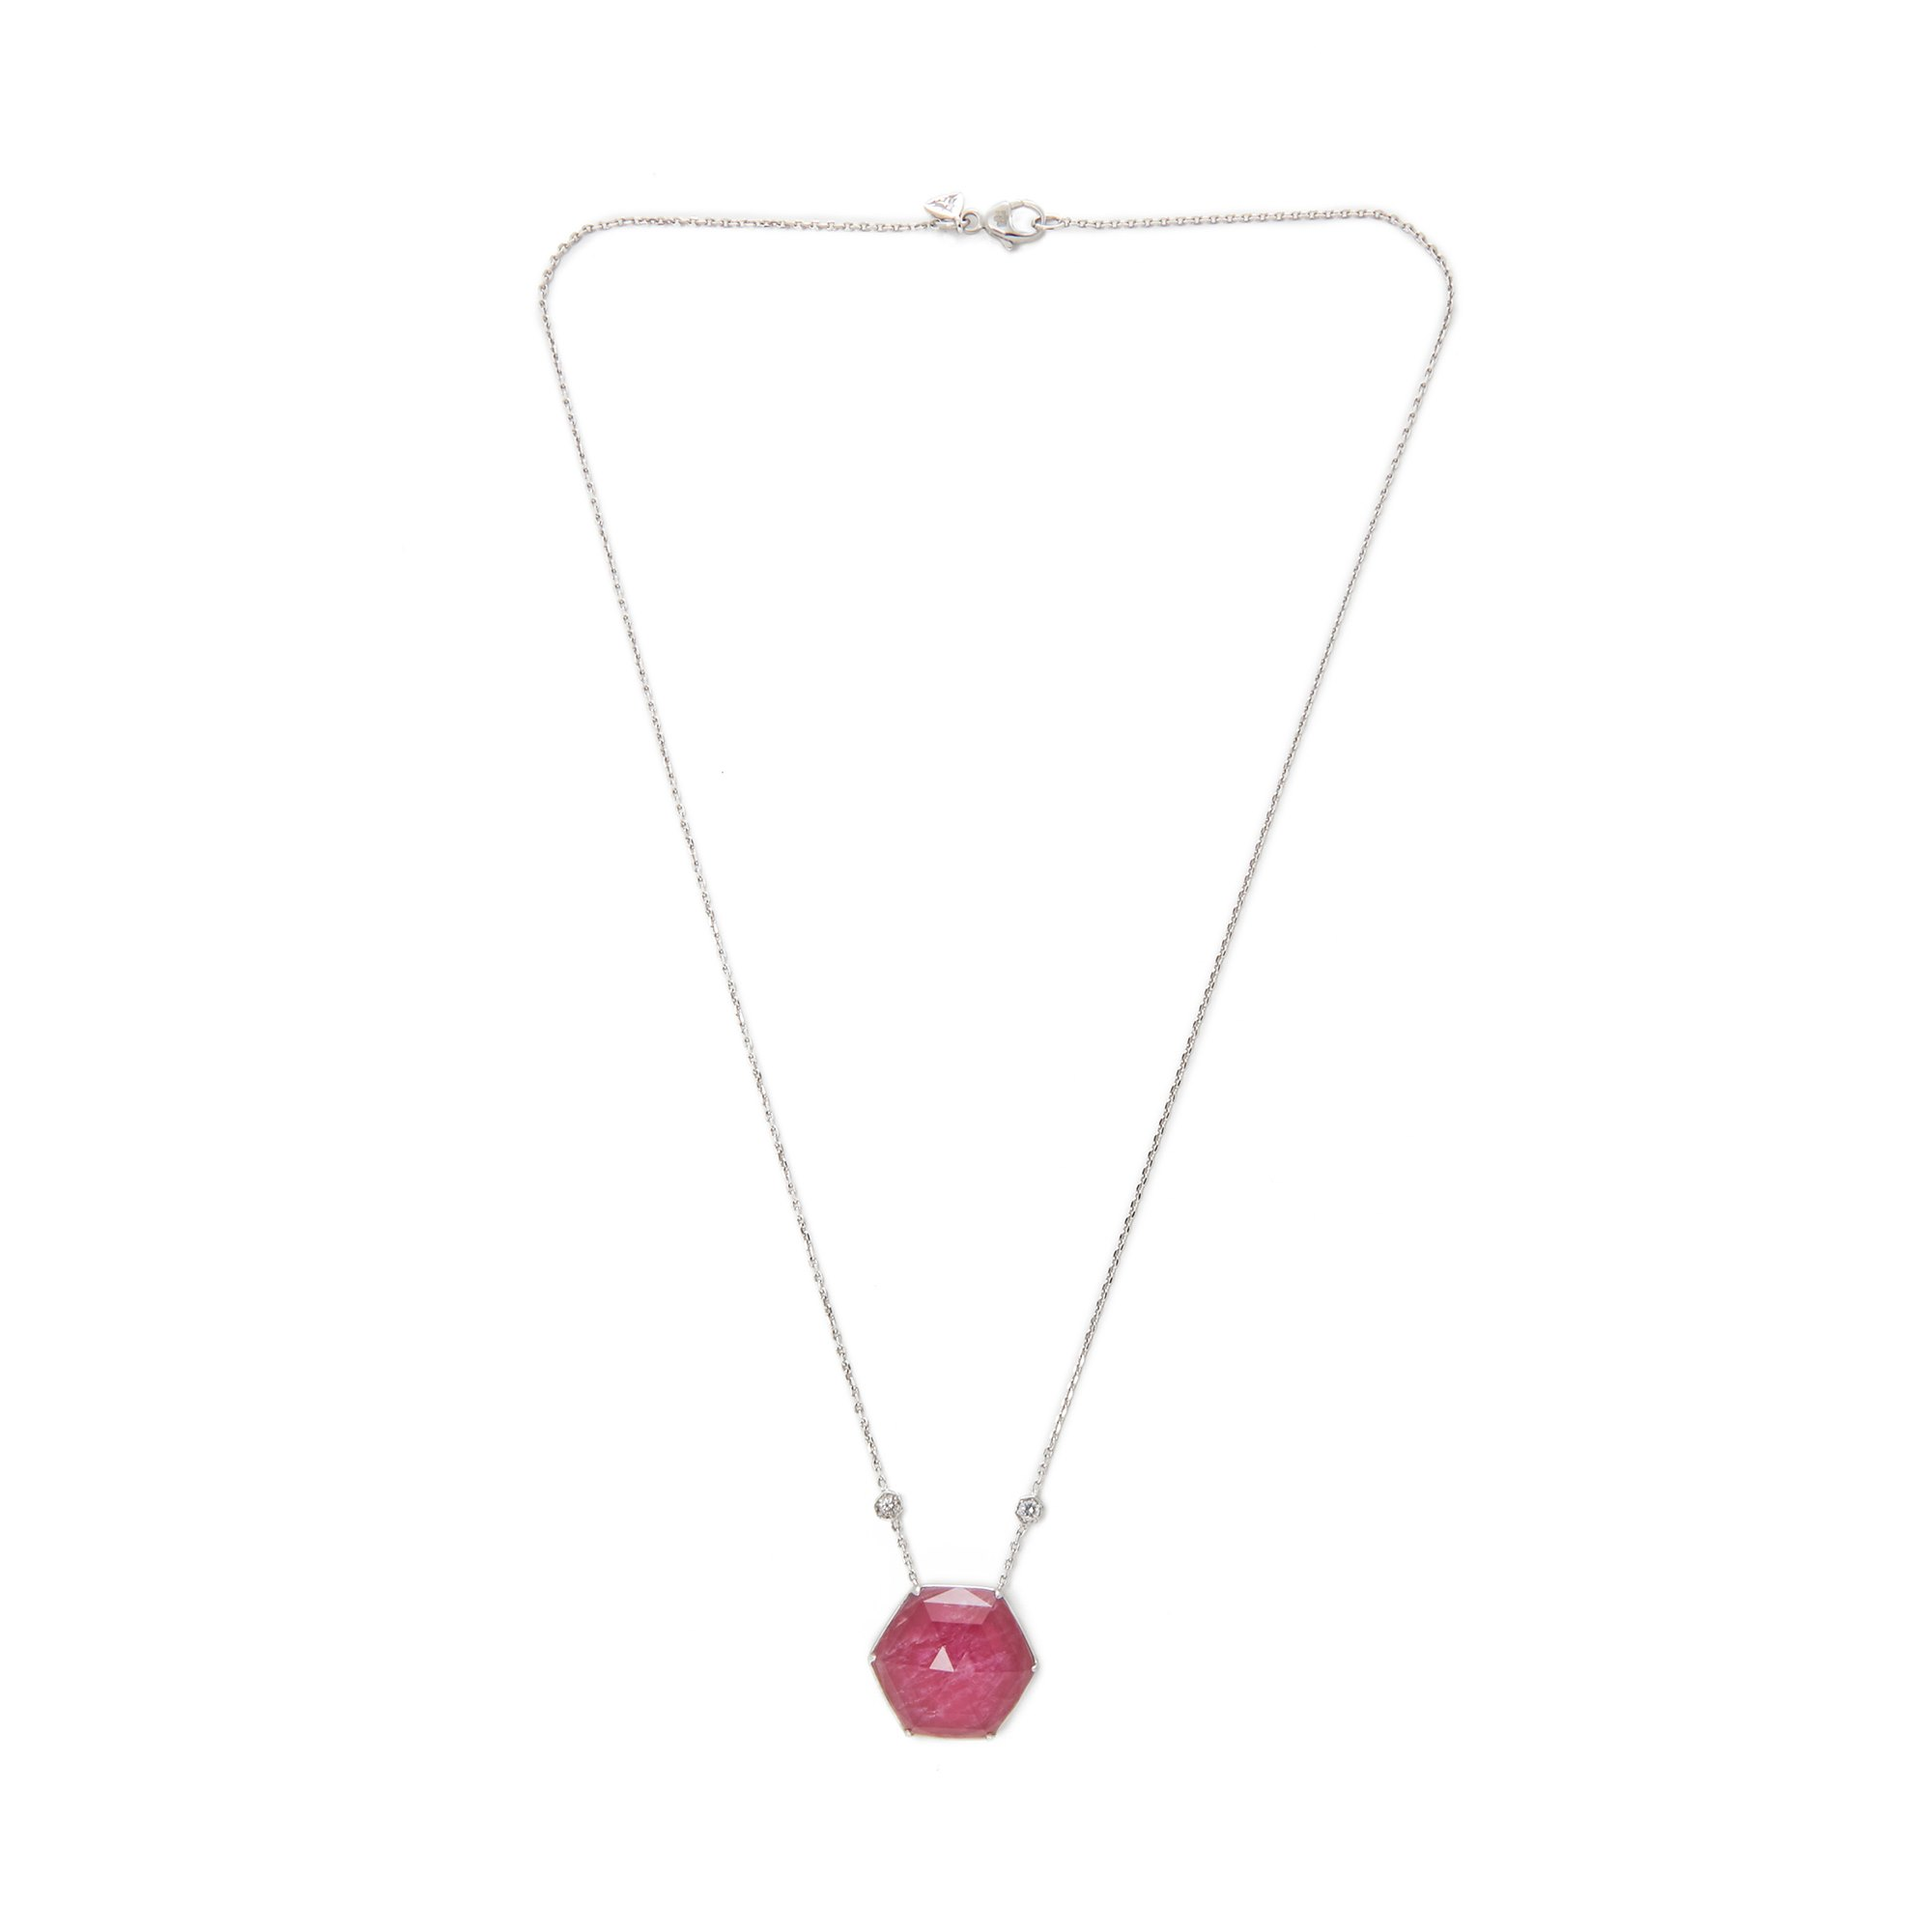 Stephen Webster Deco Haze 18ct White Gold Ruby Quartz and Diamond Pendant